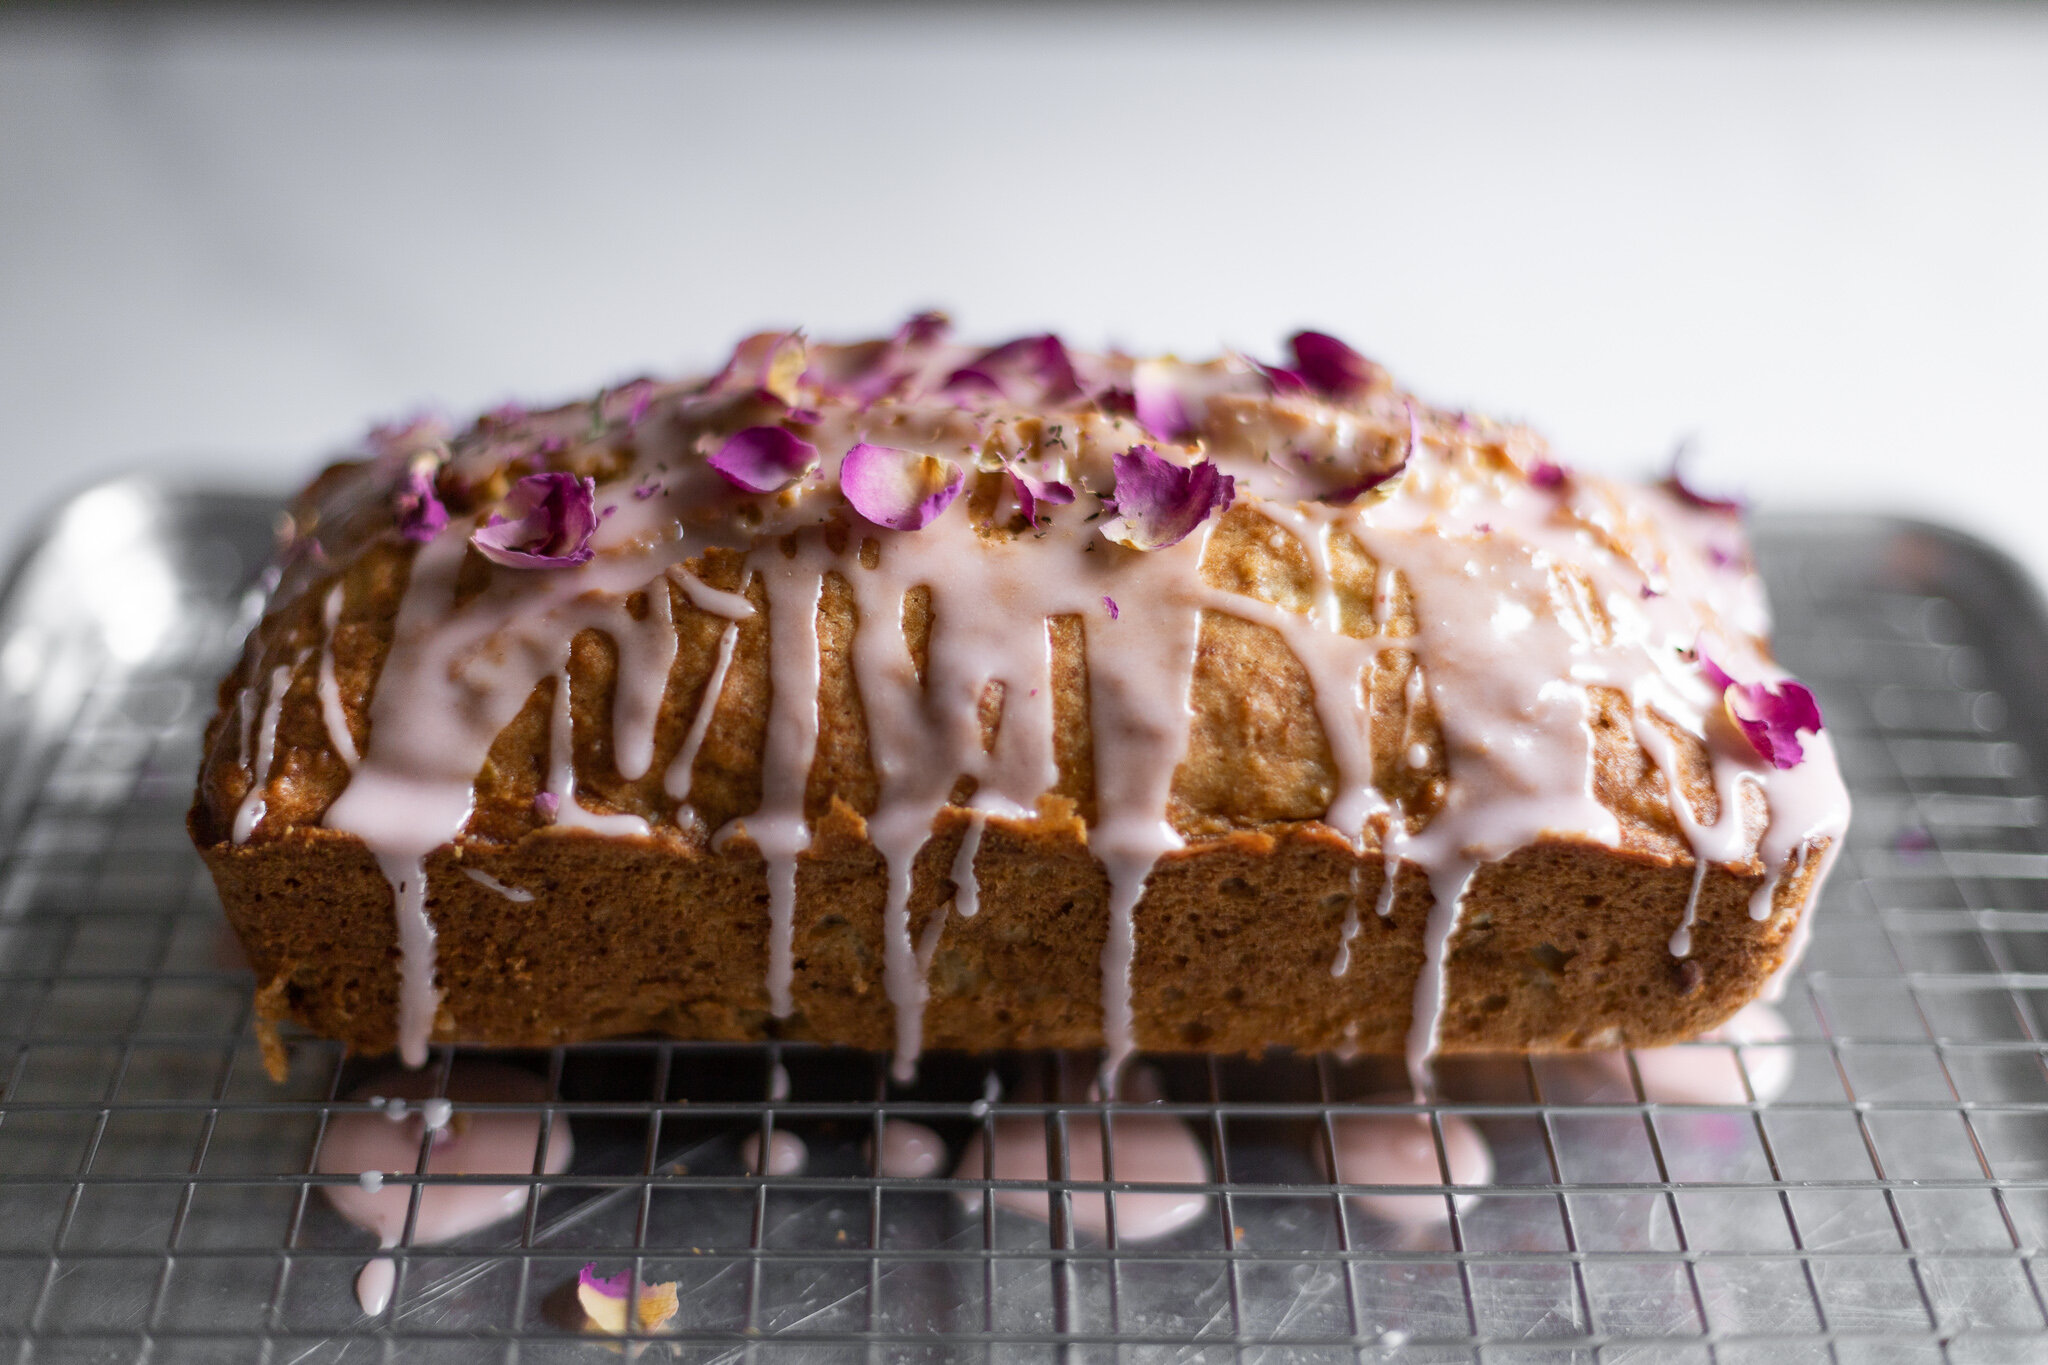 a rectangular quince loaf cake with light pink icing dripping down the sides and rose petals on top, from a 45 degree angle